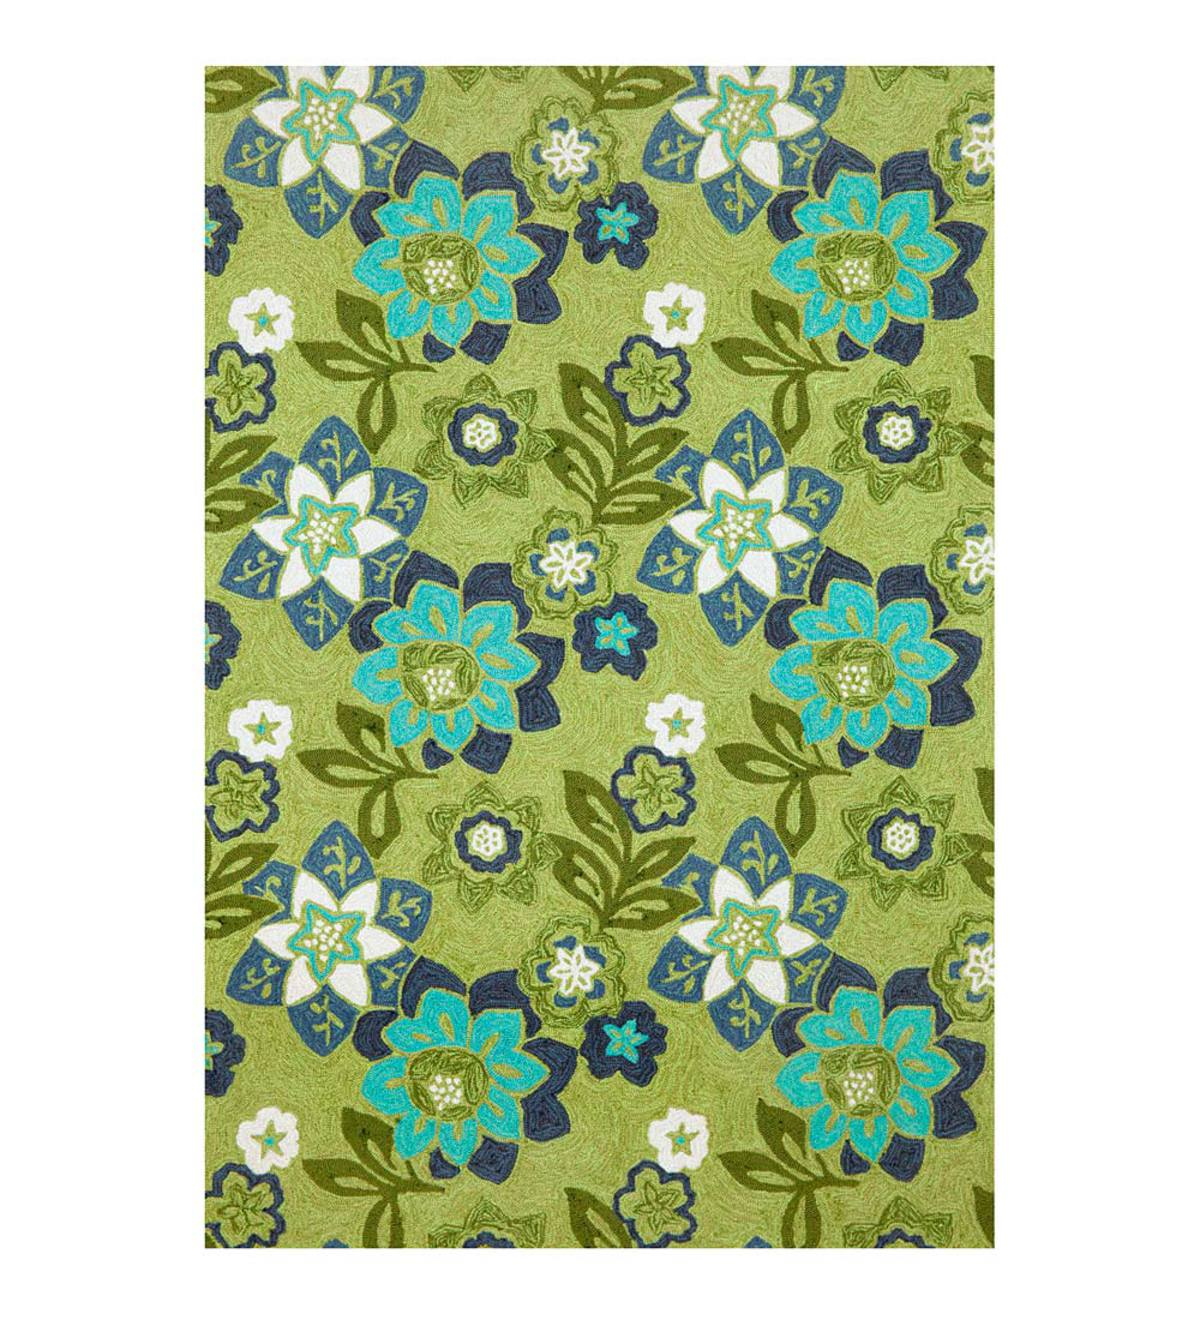 Blue and Green Floral Accent Rug, 7'6